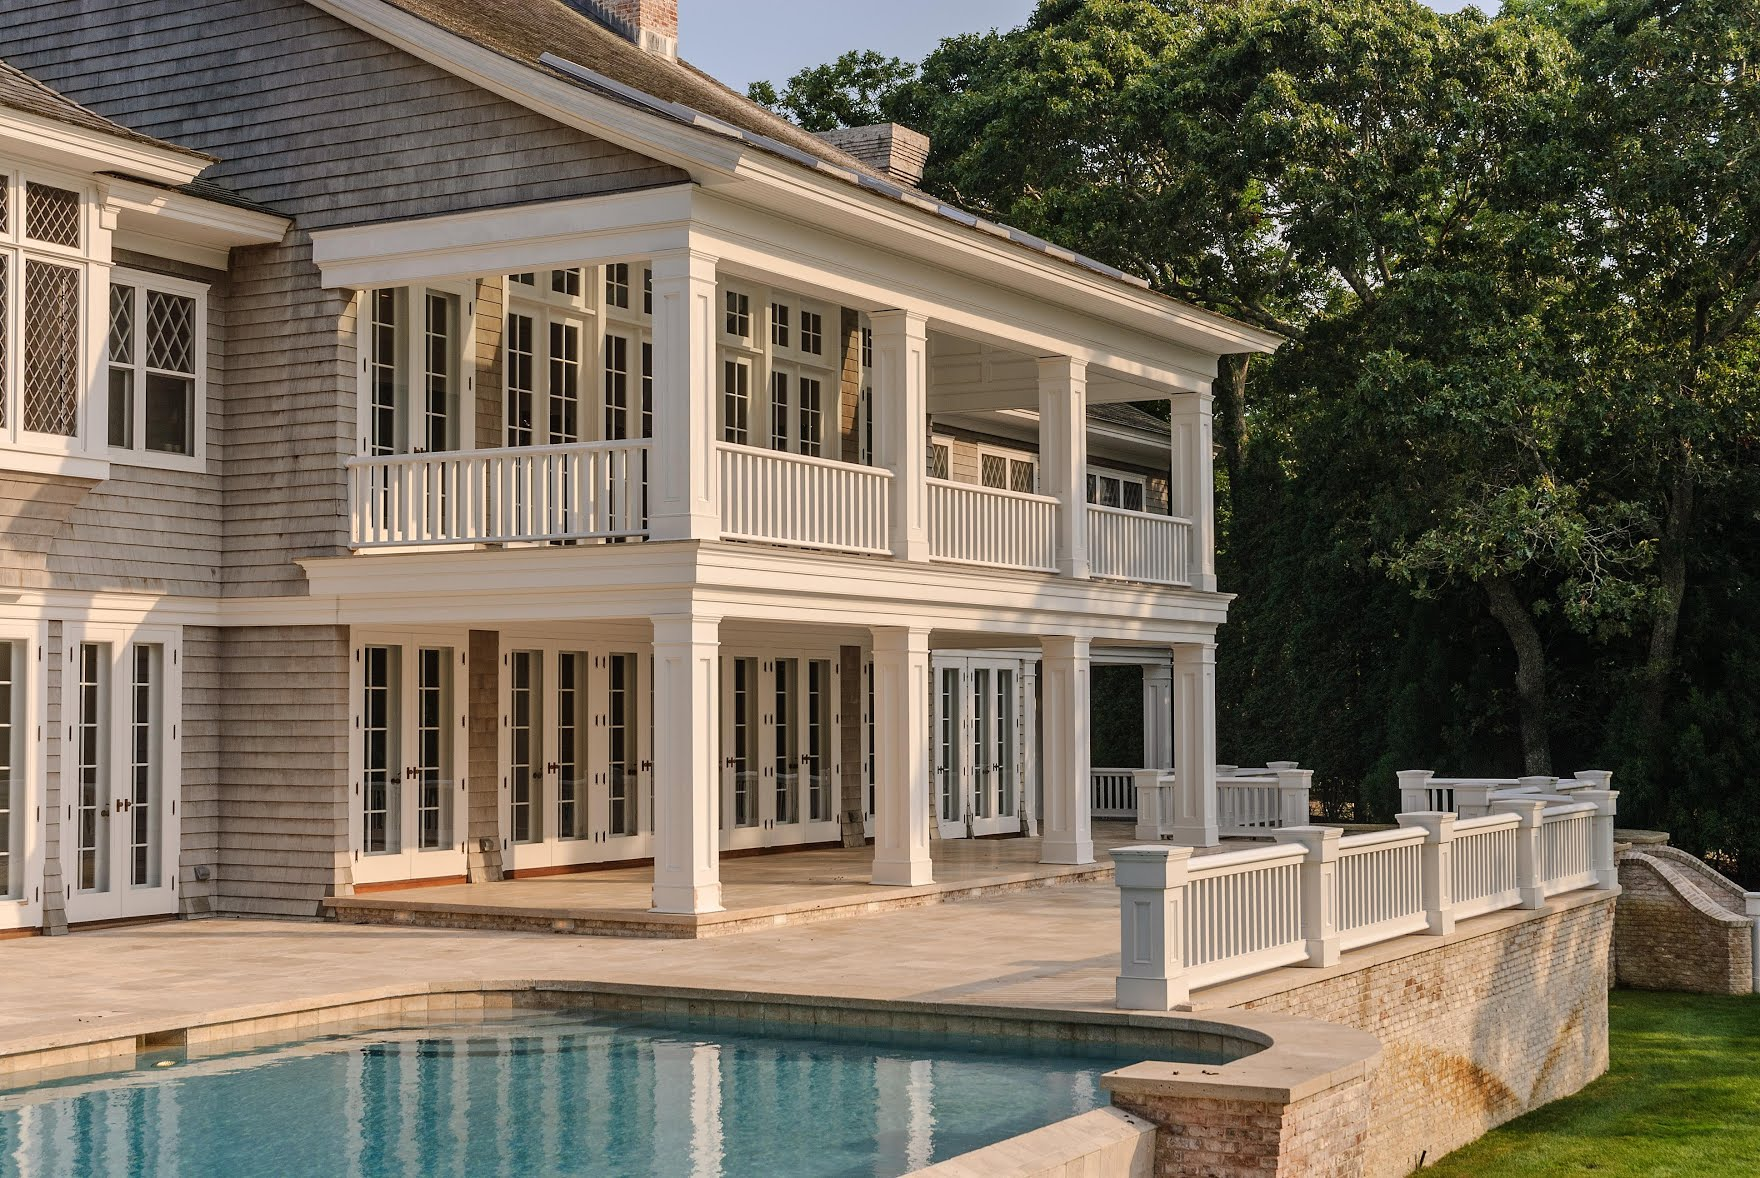 The Gatsby-eque home is perfect for its new superstar owners